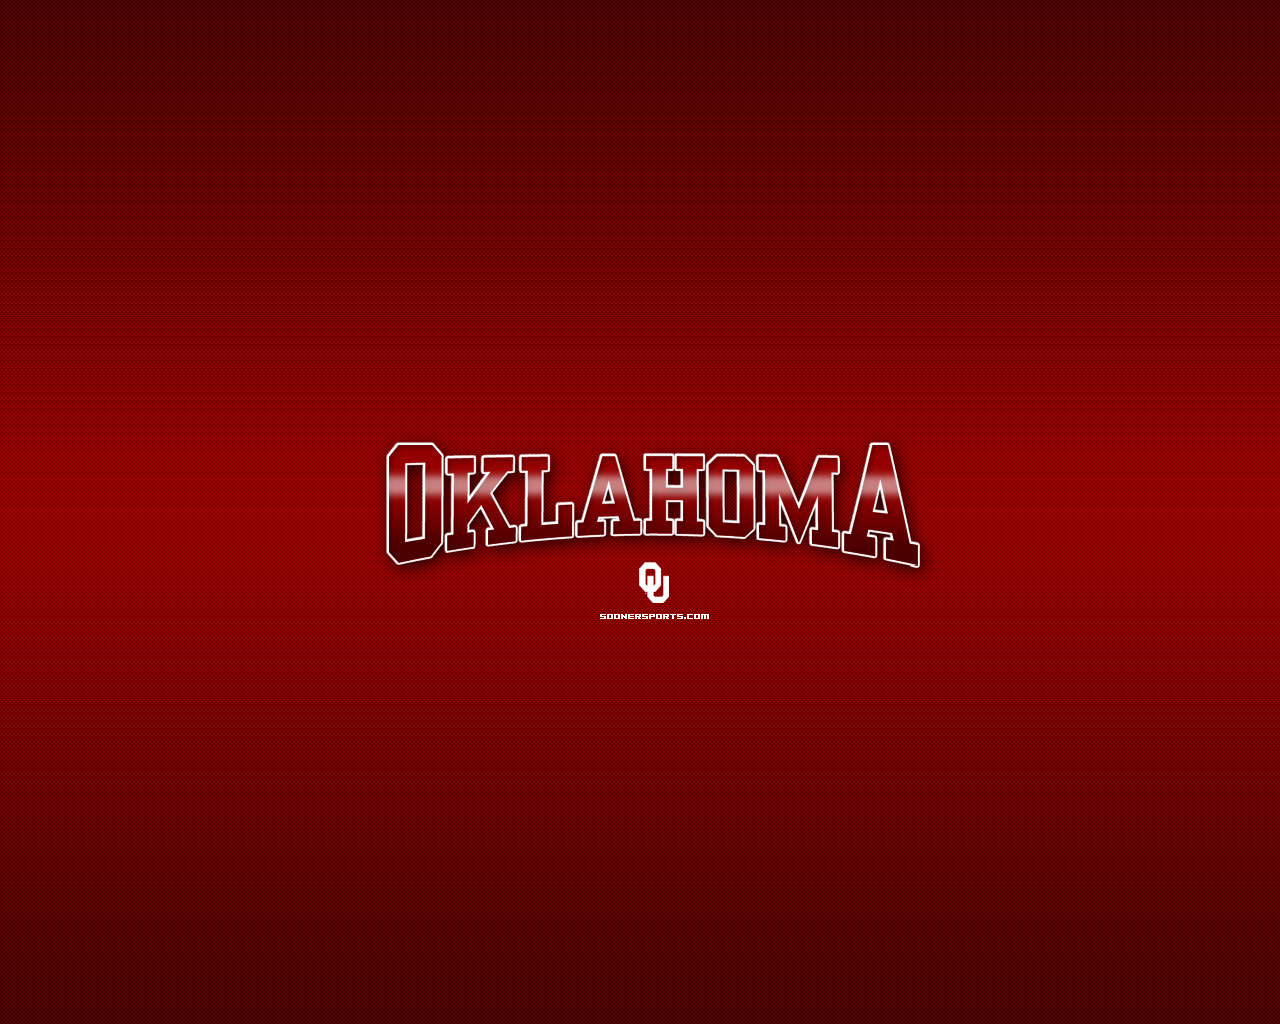 Oklahoma Wallpapers   The Official Site of Oklahoma Sooner 1280x1024